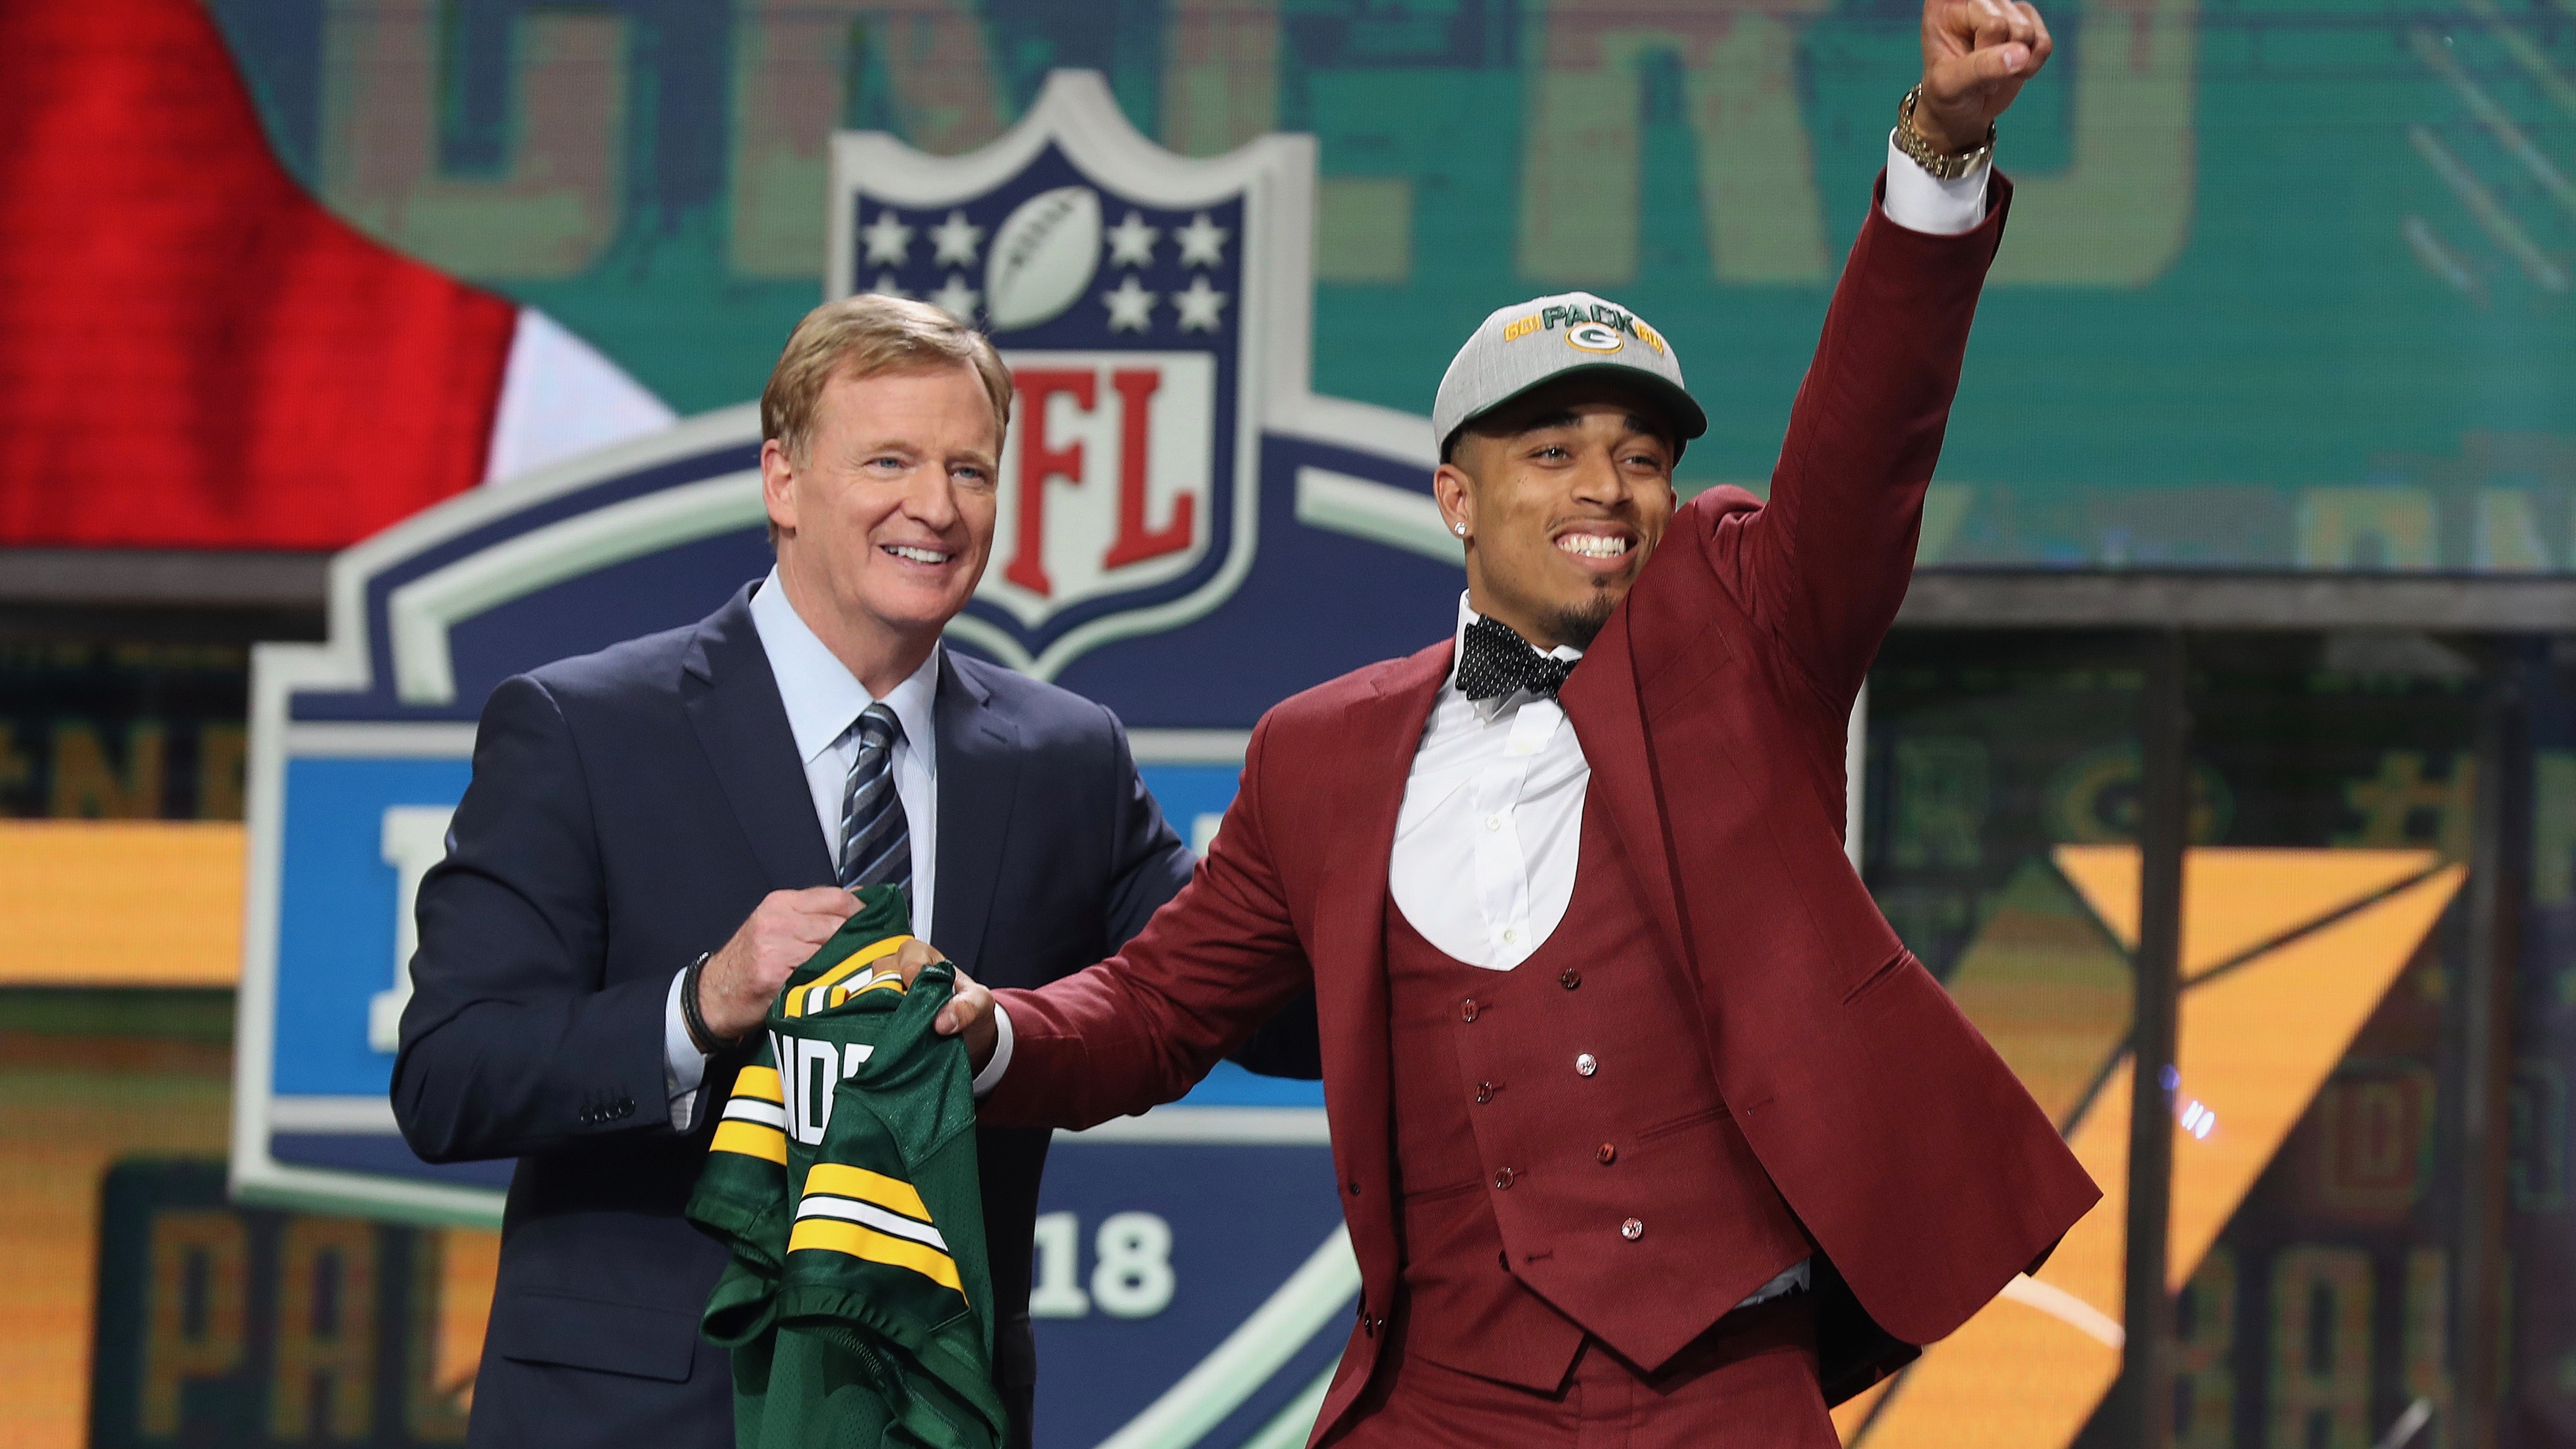 NFL commissioner Roger Goodell with Jaire Alexander as he is selected for the Green Bay Packers in April 2018.